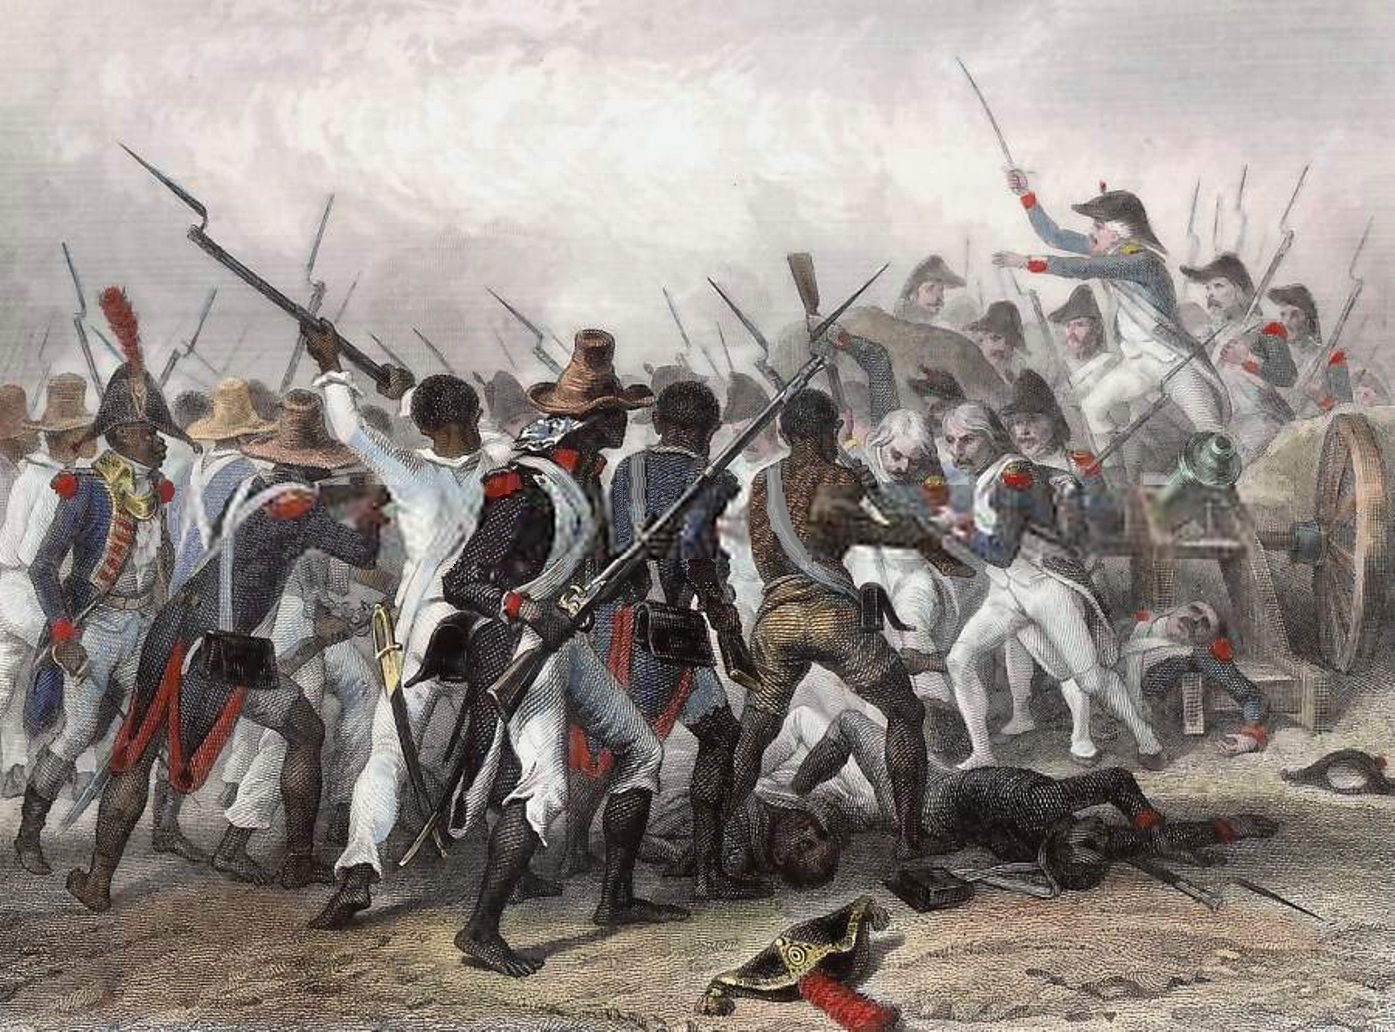 an overview of the historic french revolution during the end of 18th century Get an answer for 'compare and contrast french and english political development during the 17th centurywhose development was most influential and why' and find homework help for other history questions at enotes.